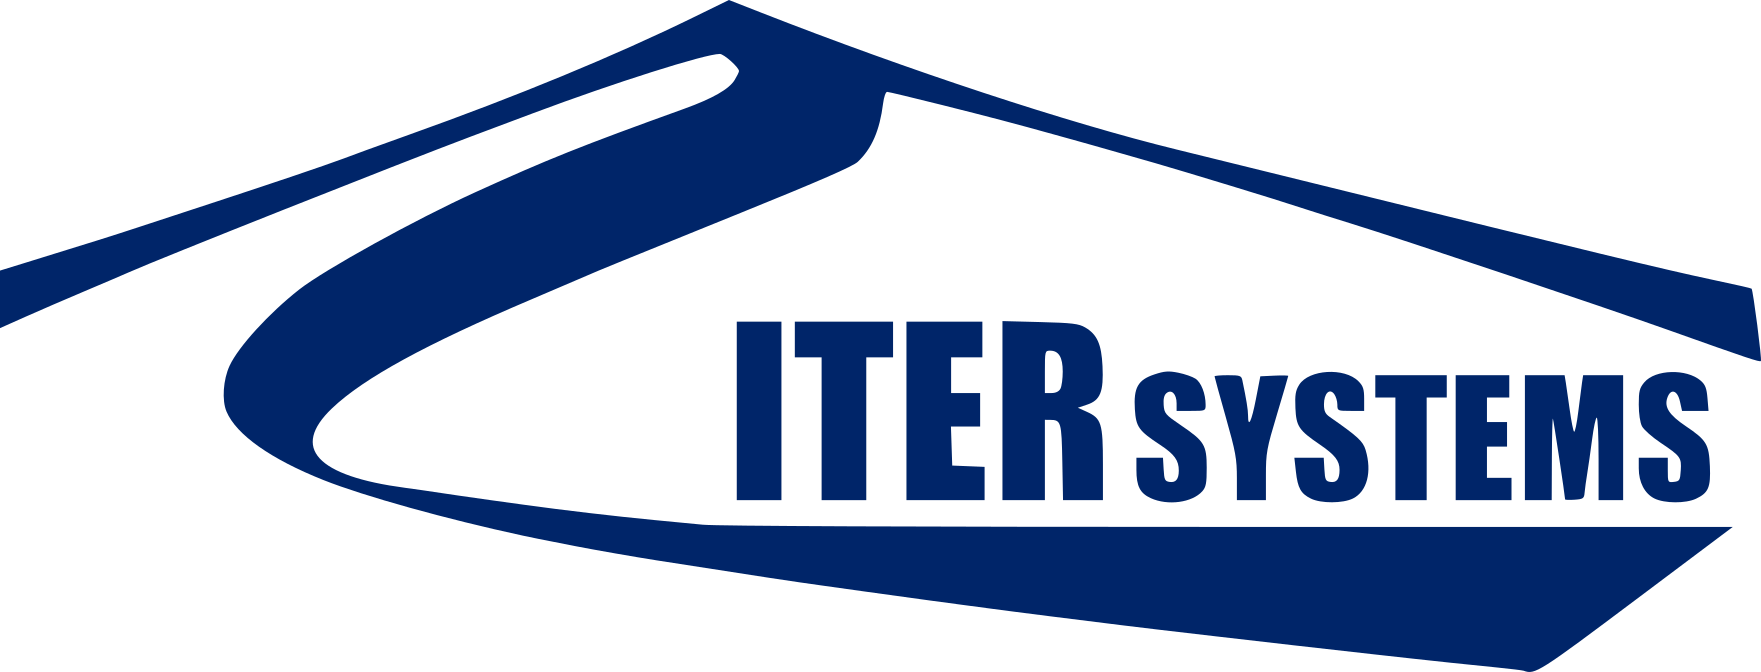 ITER Systems